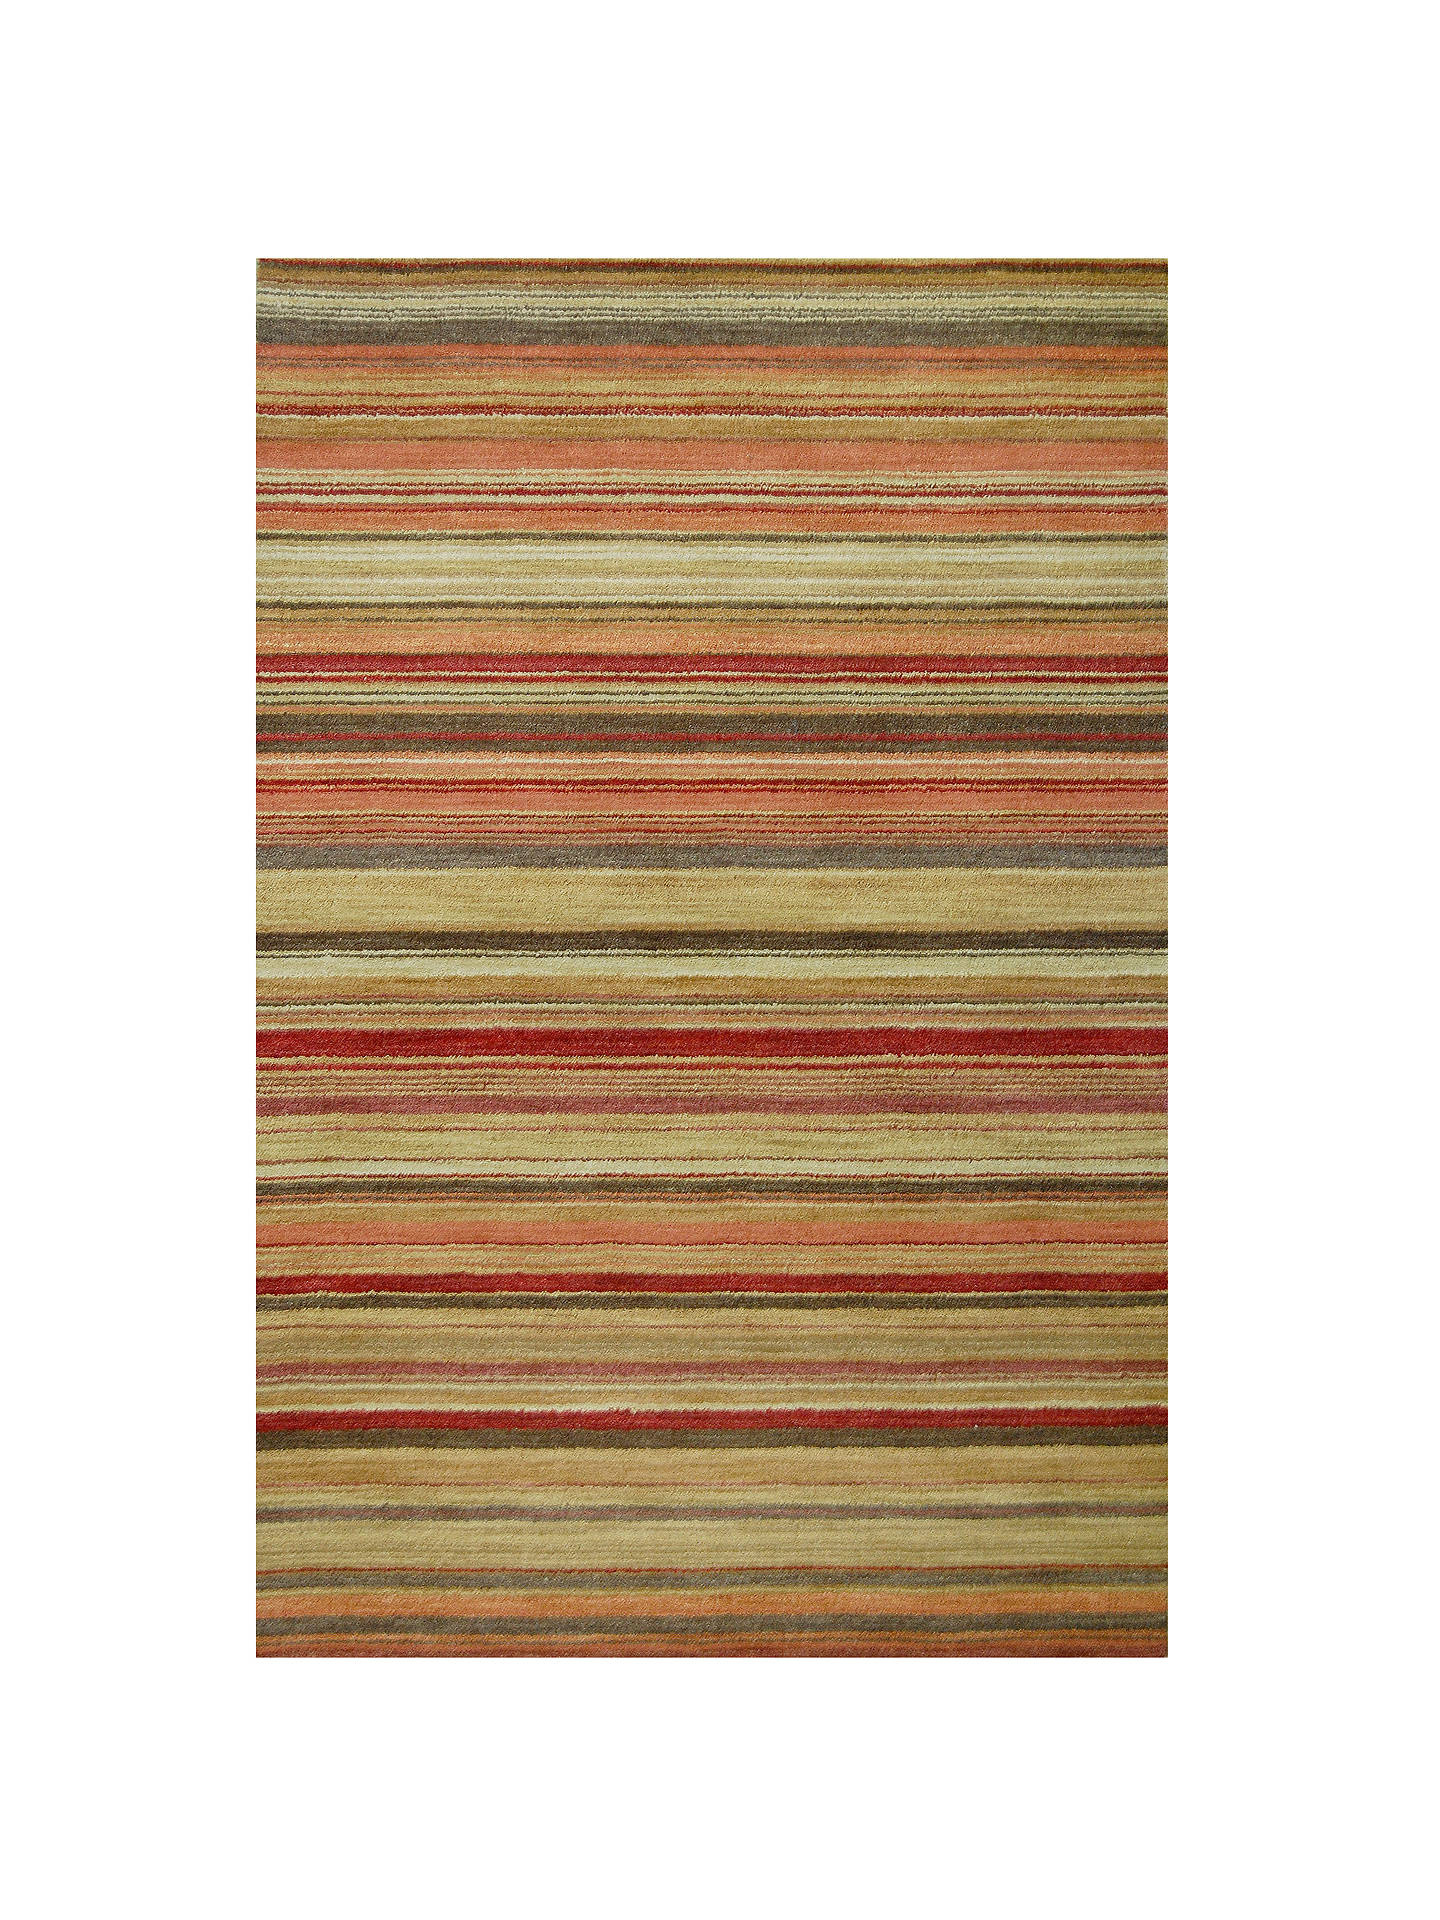 BuyJohn Lewis & Partners Multi Stripe Rugs, Harvest, L120 x W60cm Online at johnlewis.com